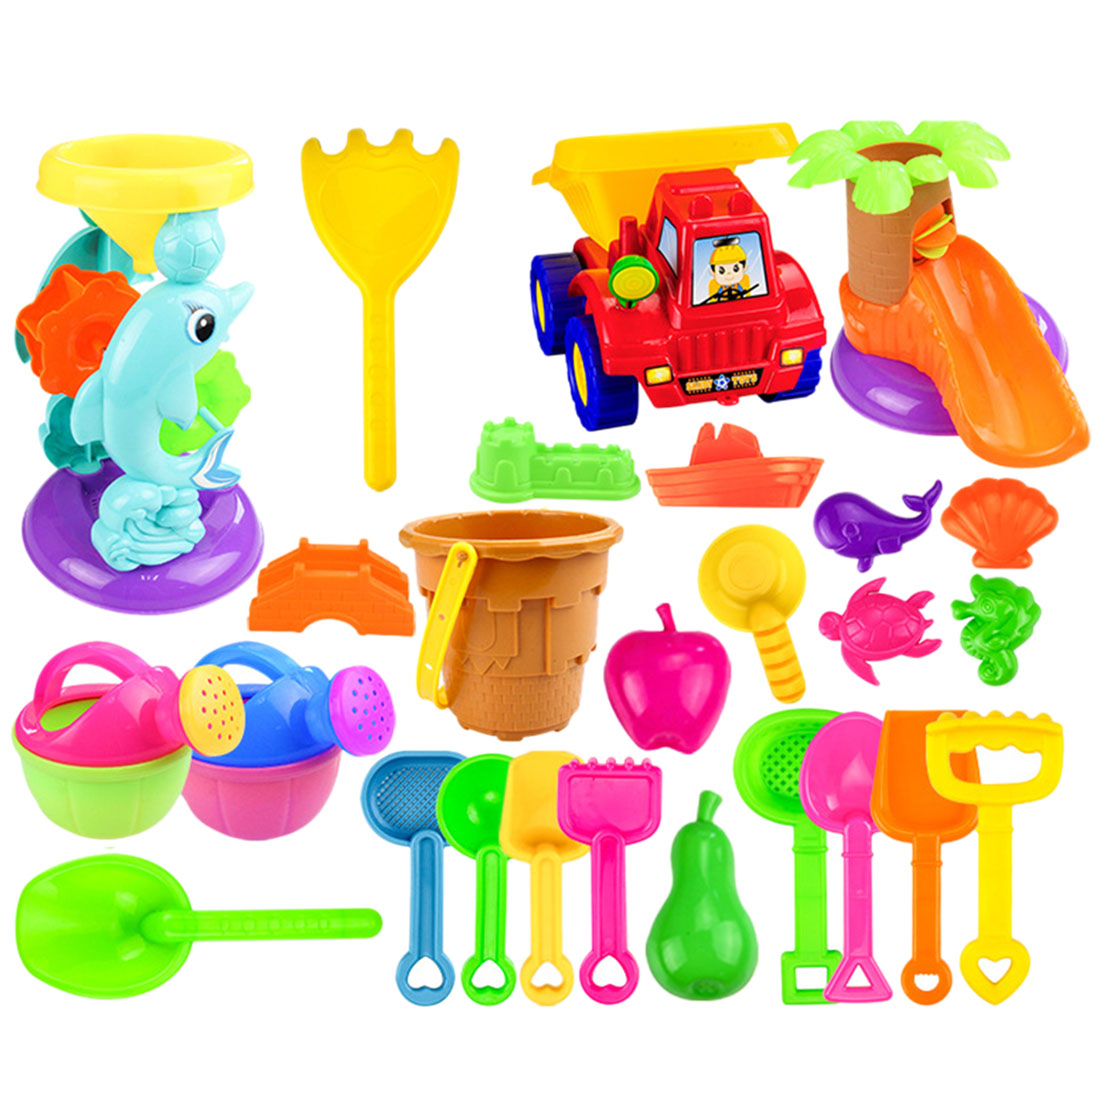 26Pcs Outdoor Kids Beach Sand Toys Beach Bucket Playset For Kids Baby Sand Clay Mold Sand Water Playing Tool Toy - Random Color